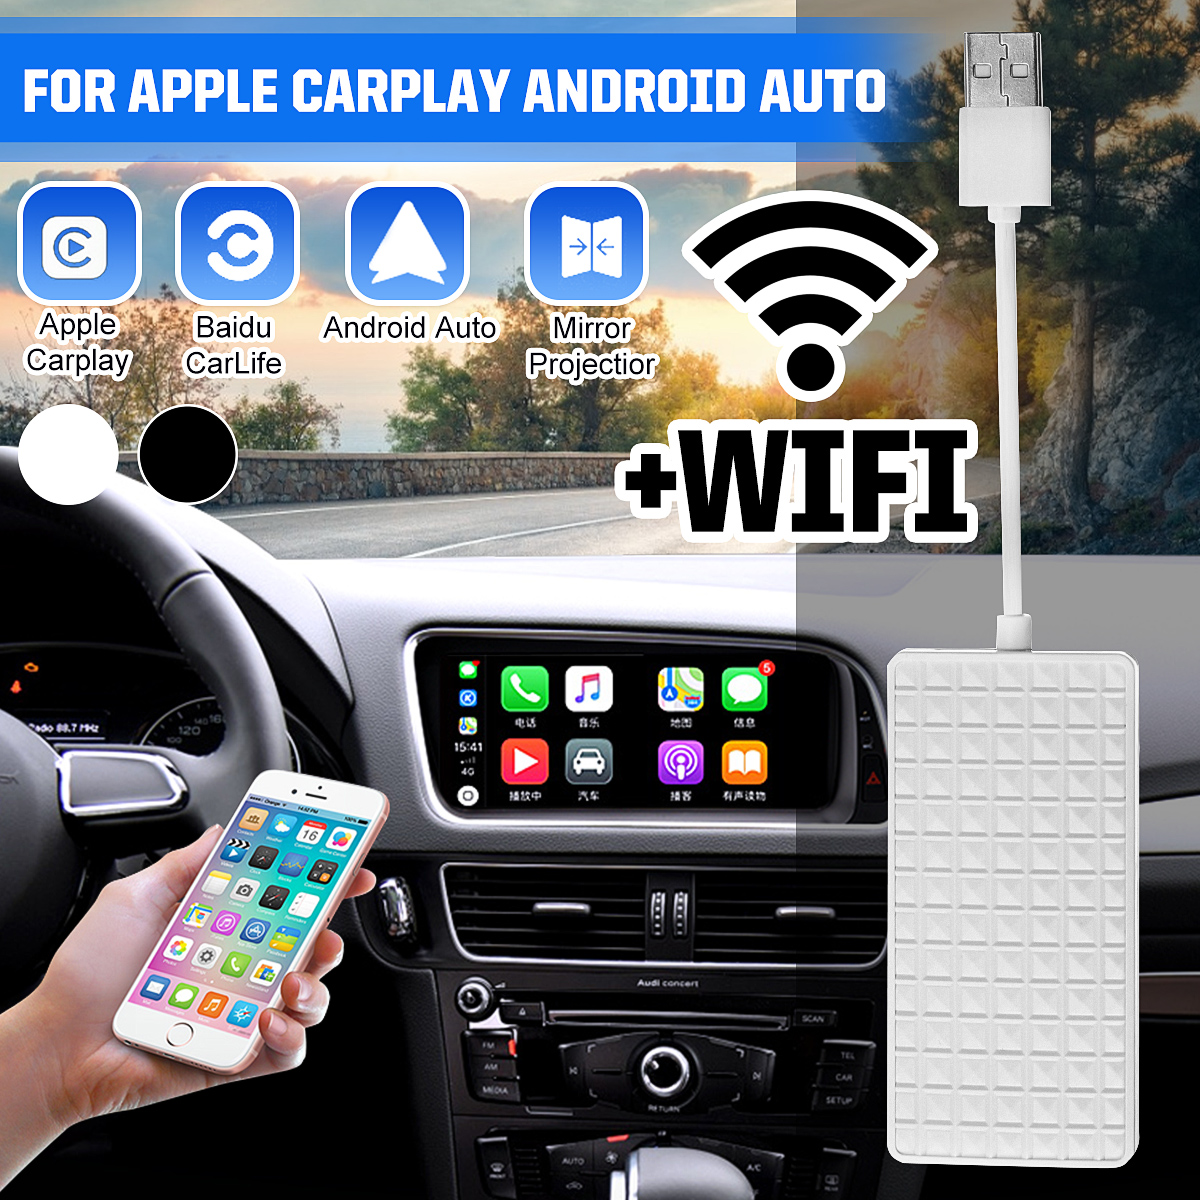 USB Carplay Dongle Android Auto For Apple Iphone Android Stereo Radio Head Unit